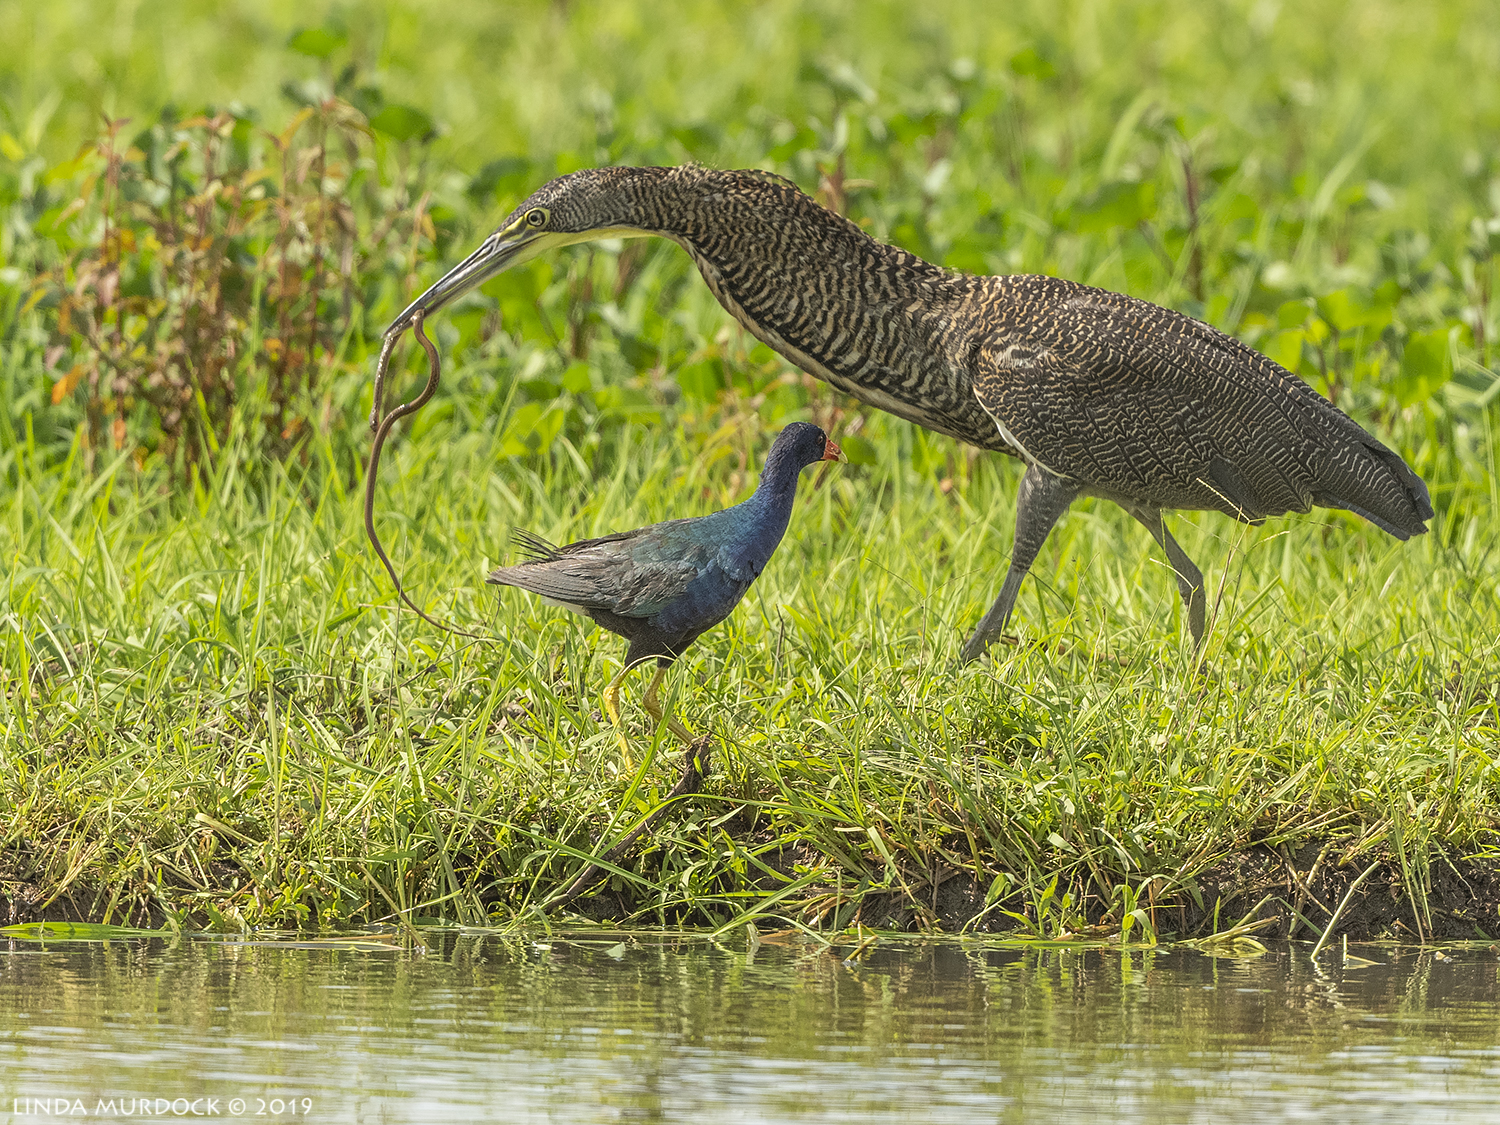 Bare-throated Tiger Heron with snake Nikon D850 with Nikkor 500 f/5.6 PF ~ 1/2000 sec f/6.3 ISO 640